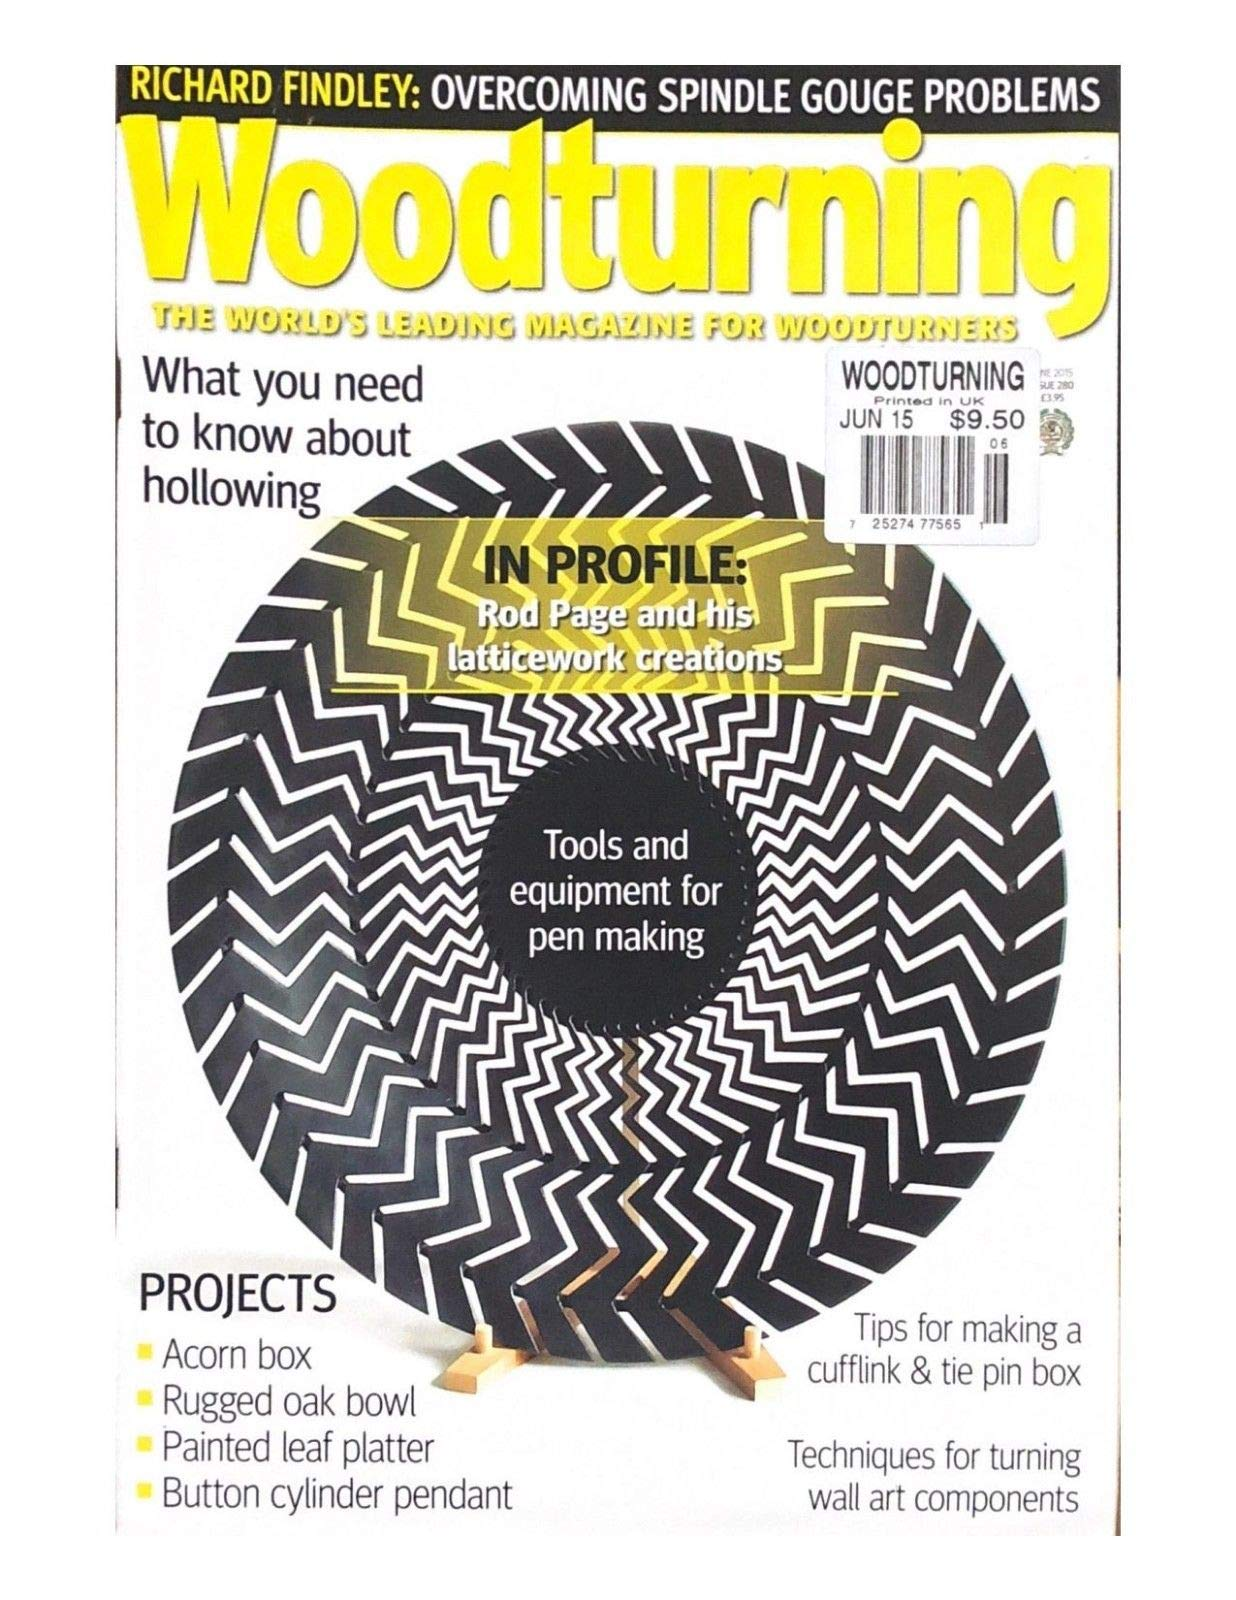 WOODTURNING, THE WORLD'S LEADING MAGAZINE FOR WOODTURNERS JUNE 2015 ISSUE 280